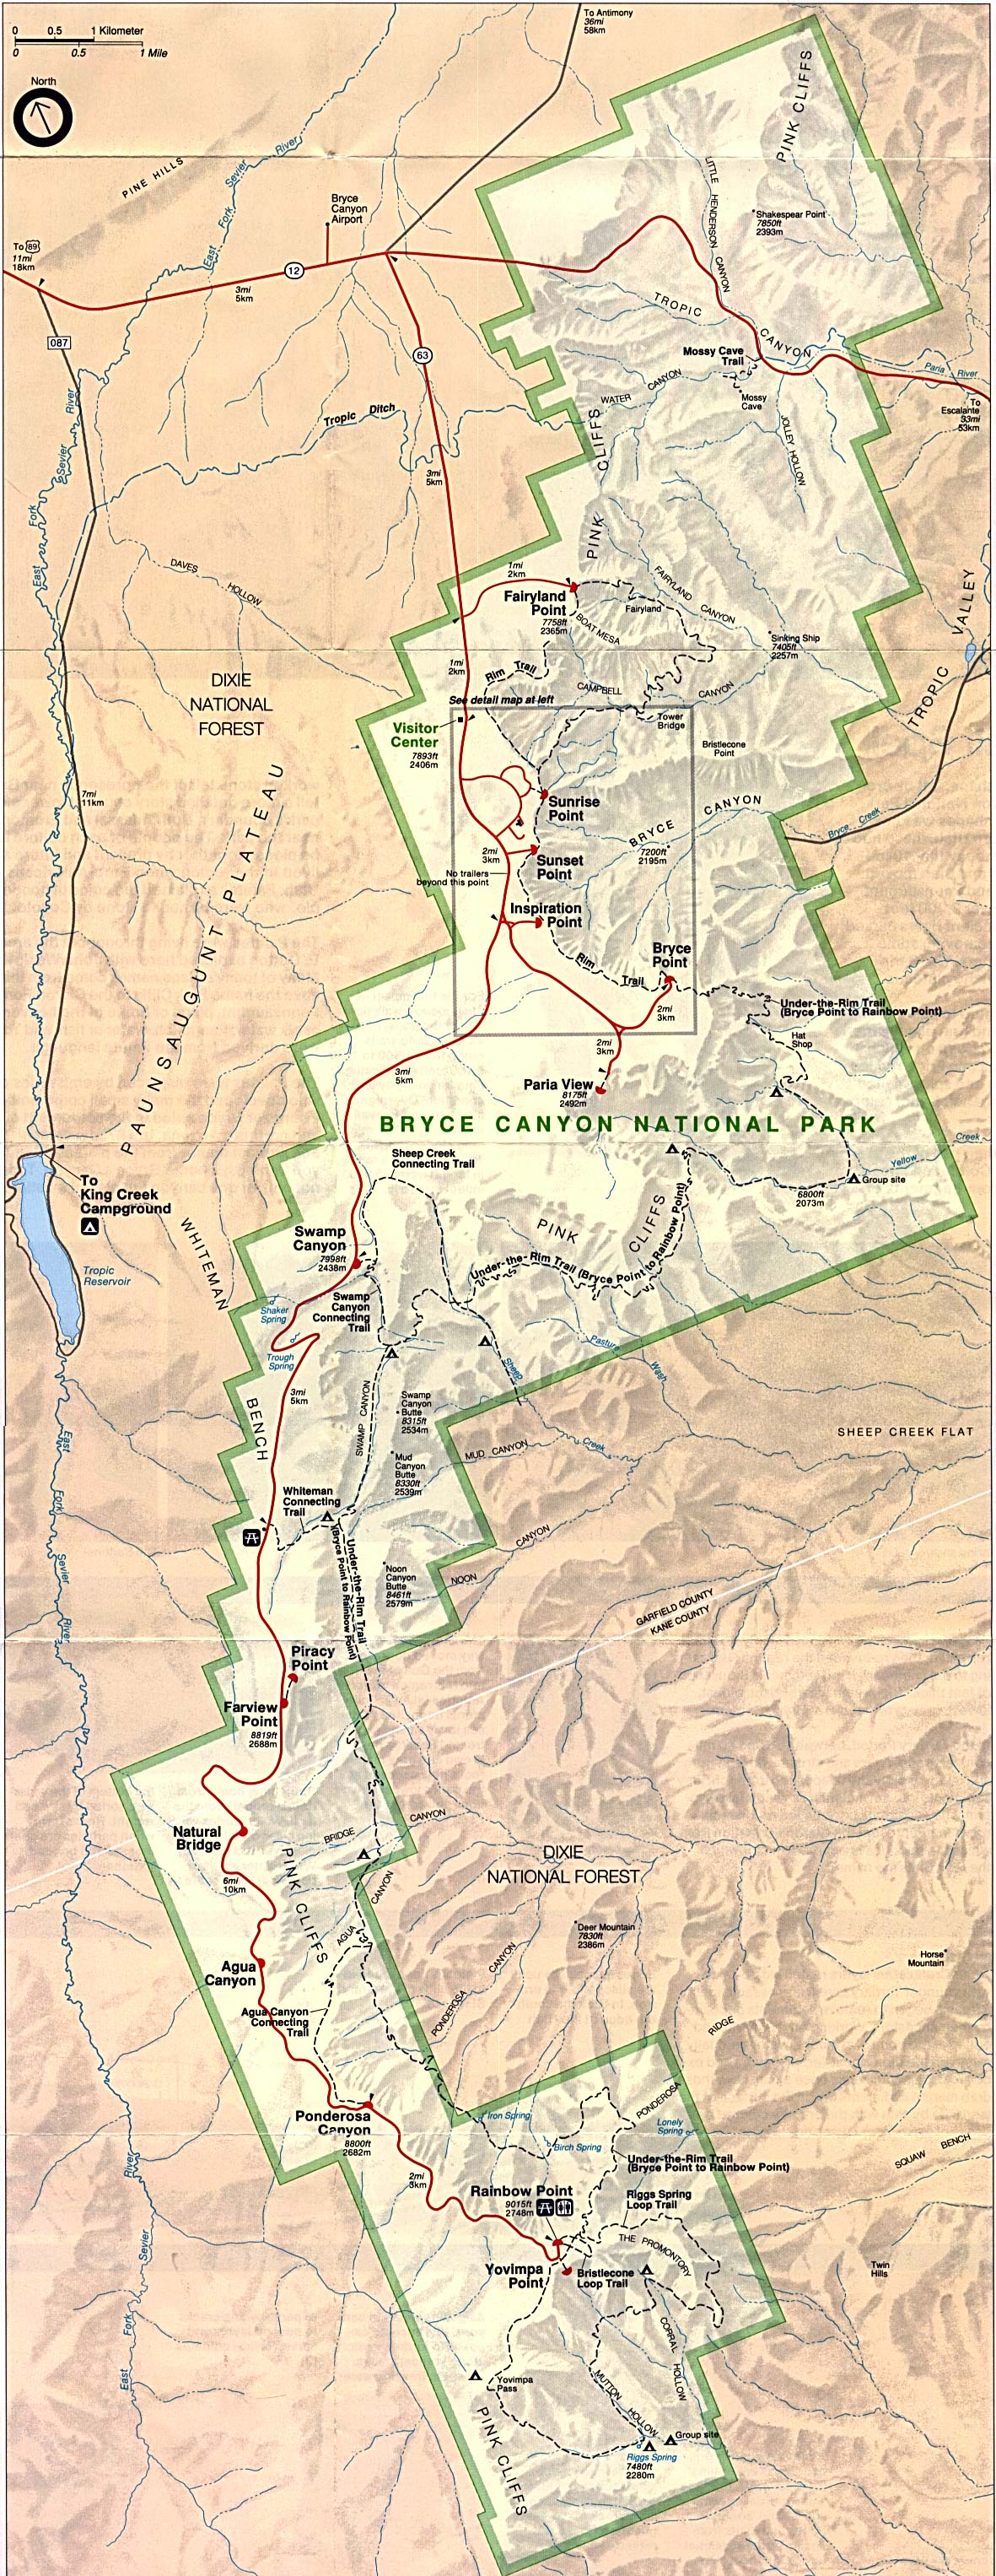 Maps of United States National Parks, Monuments and Historic Sites Bryce Canyon National Park [Utah] (Park Map) 1994 (802K)